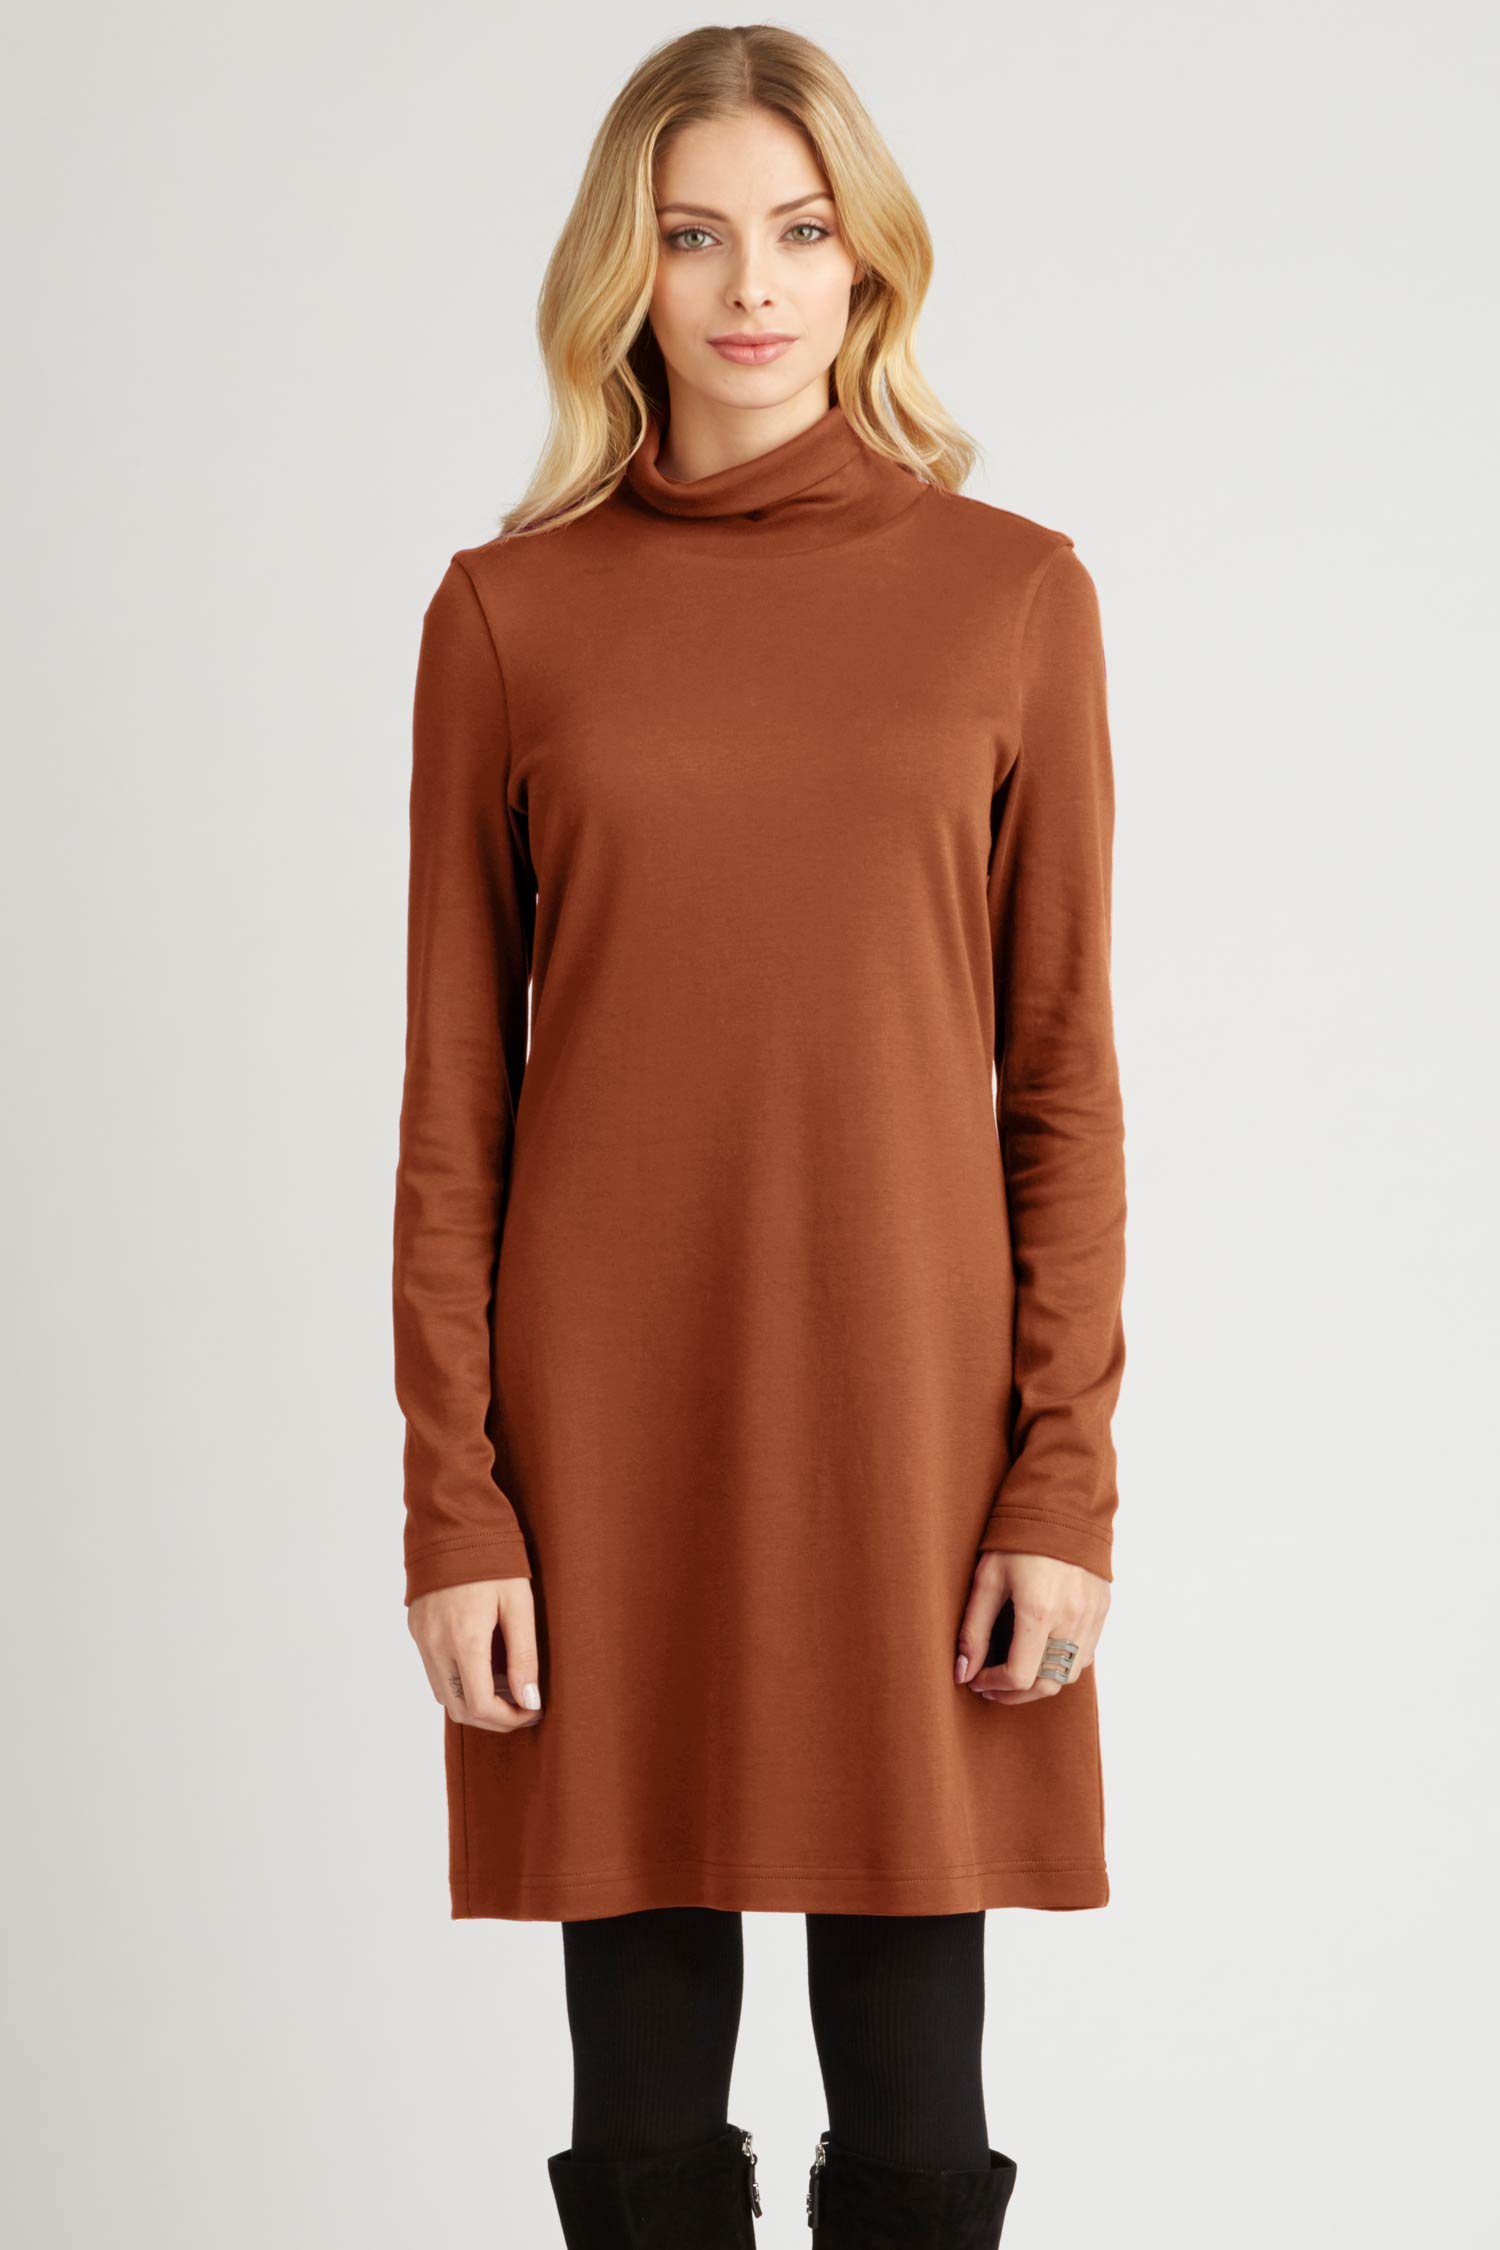 Turtleneck Dress - Indigenous